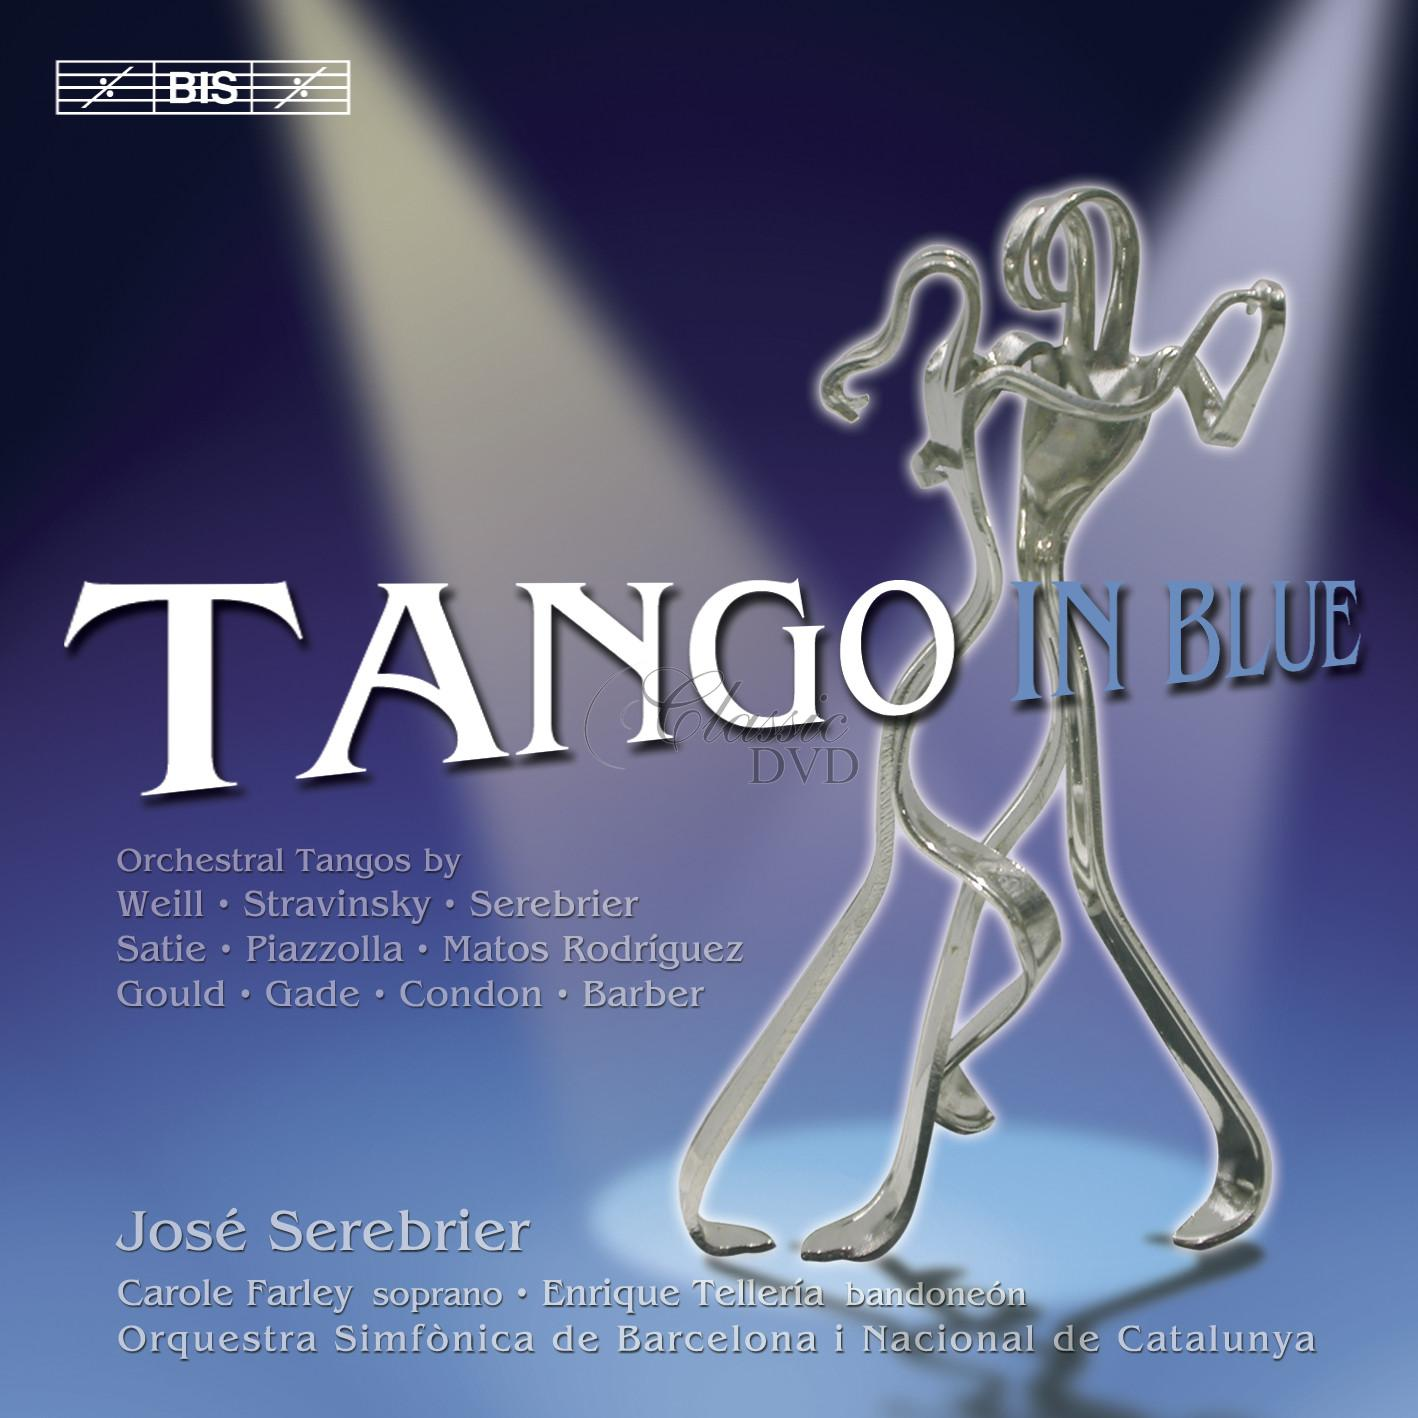 Tango in Blue - Orchestral Tangos (CD)